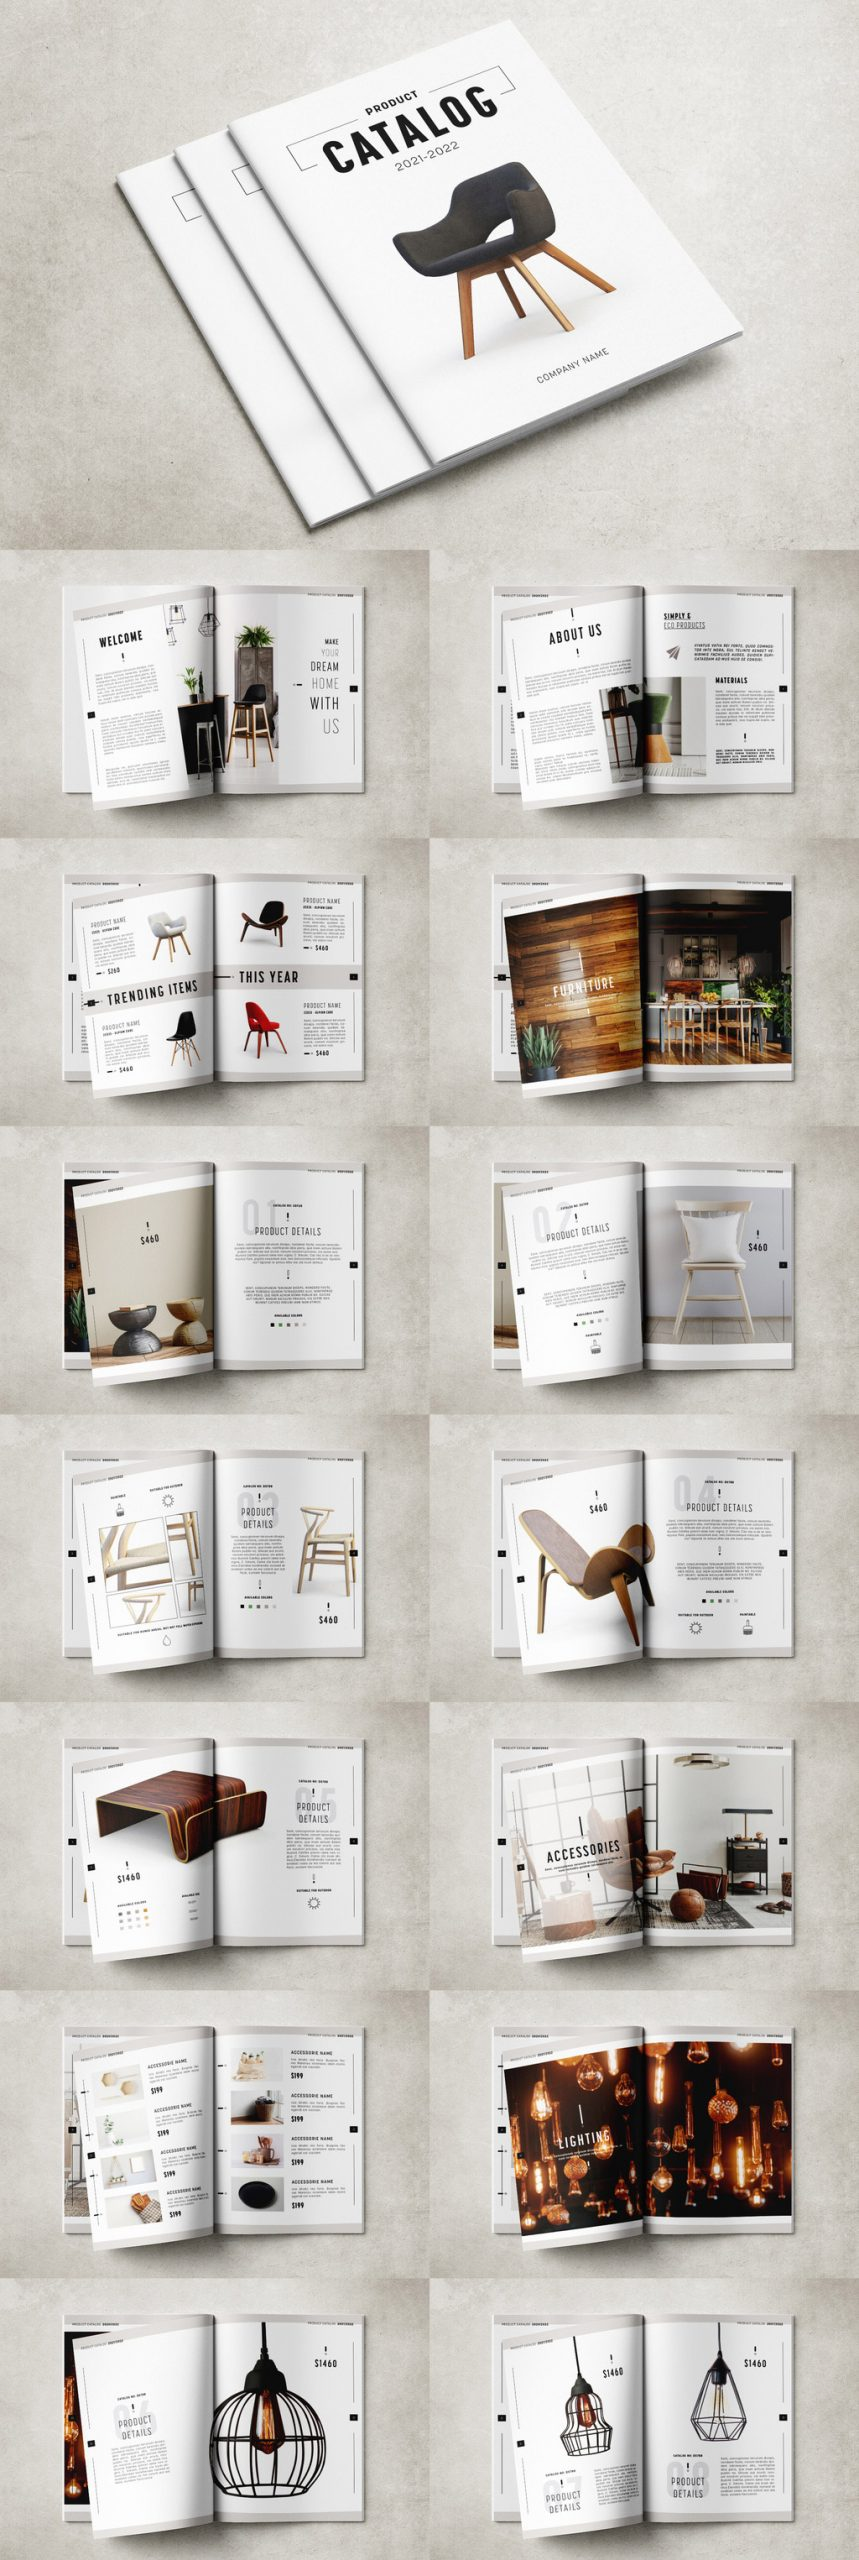 Minimal Product Catalog Template by GrkiCreative for Adobe InDesign